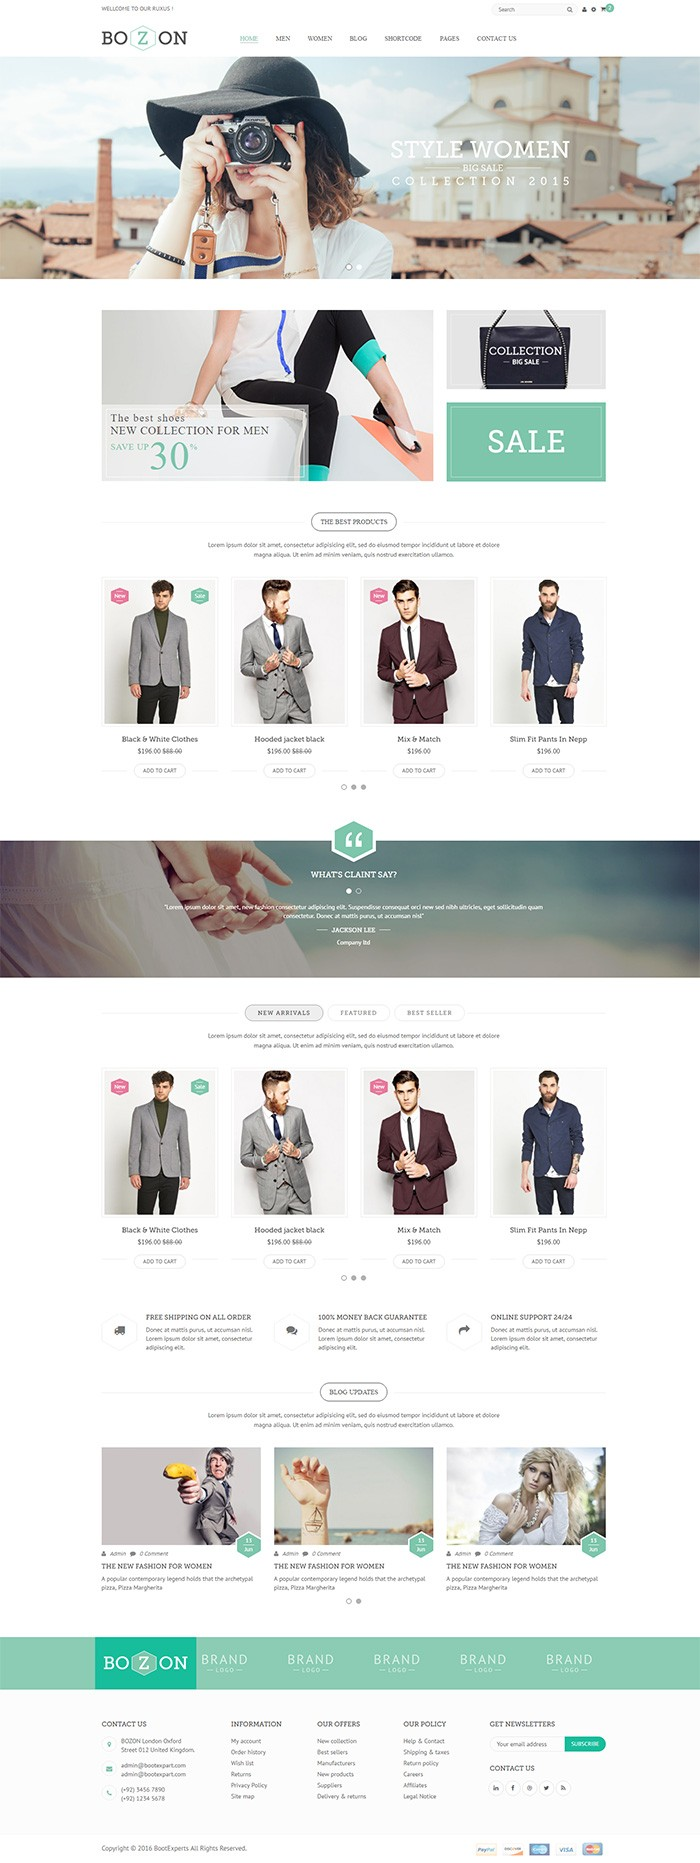 Bozon-full-home-page